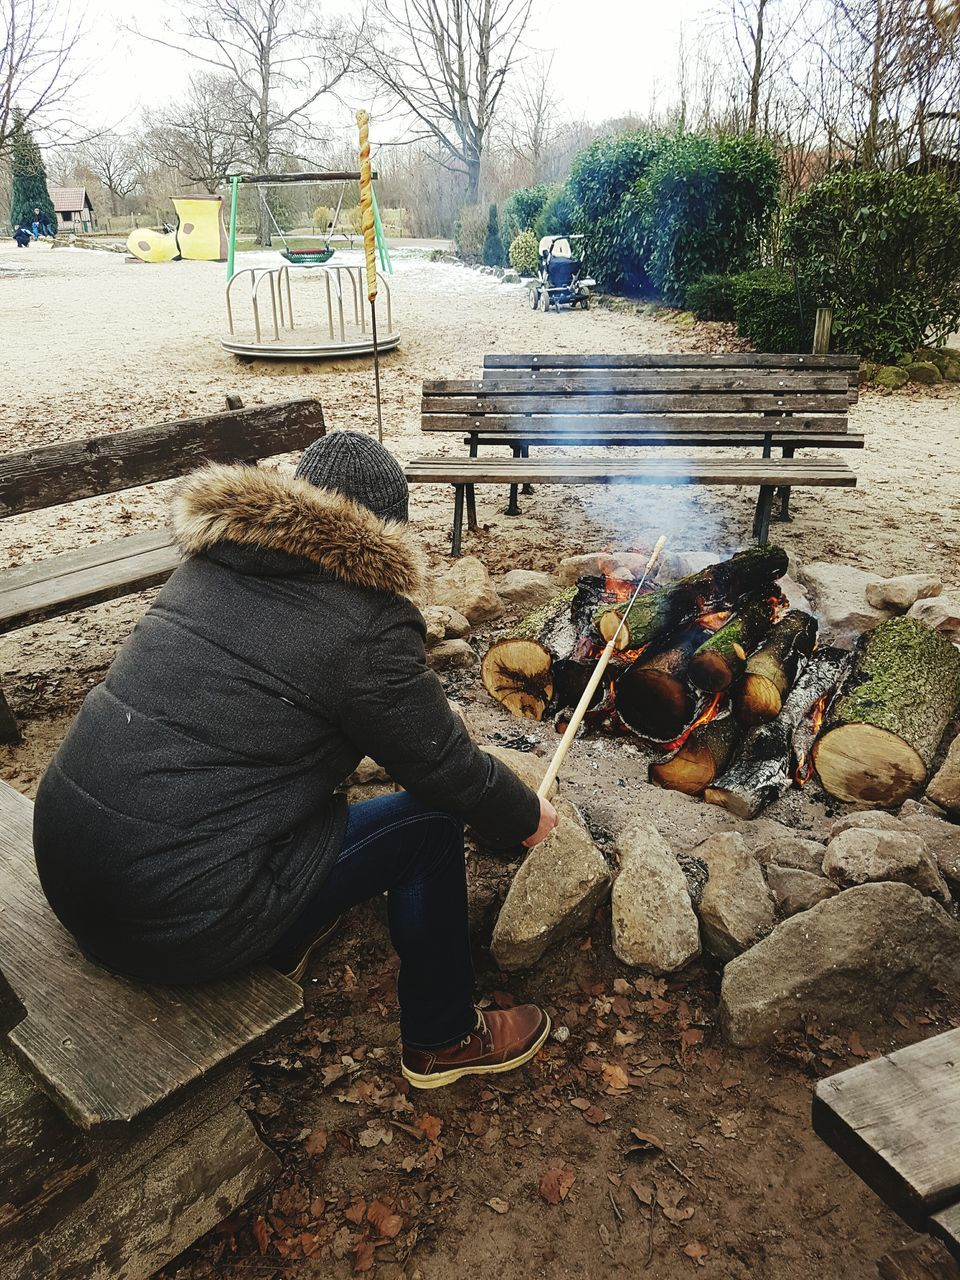 Man Cooking Meat At Bonfire On Playground During Winter